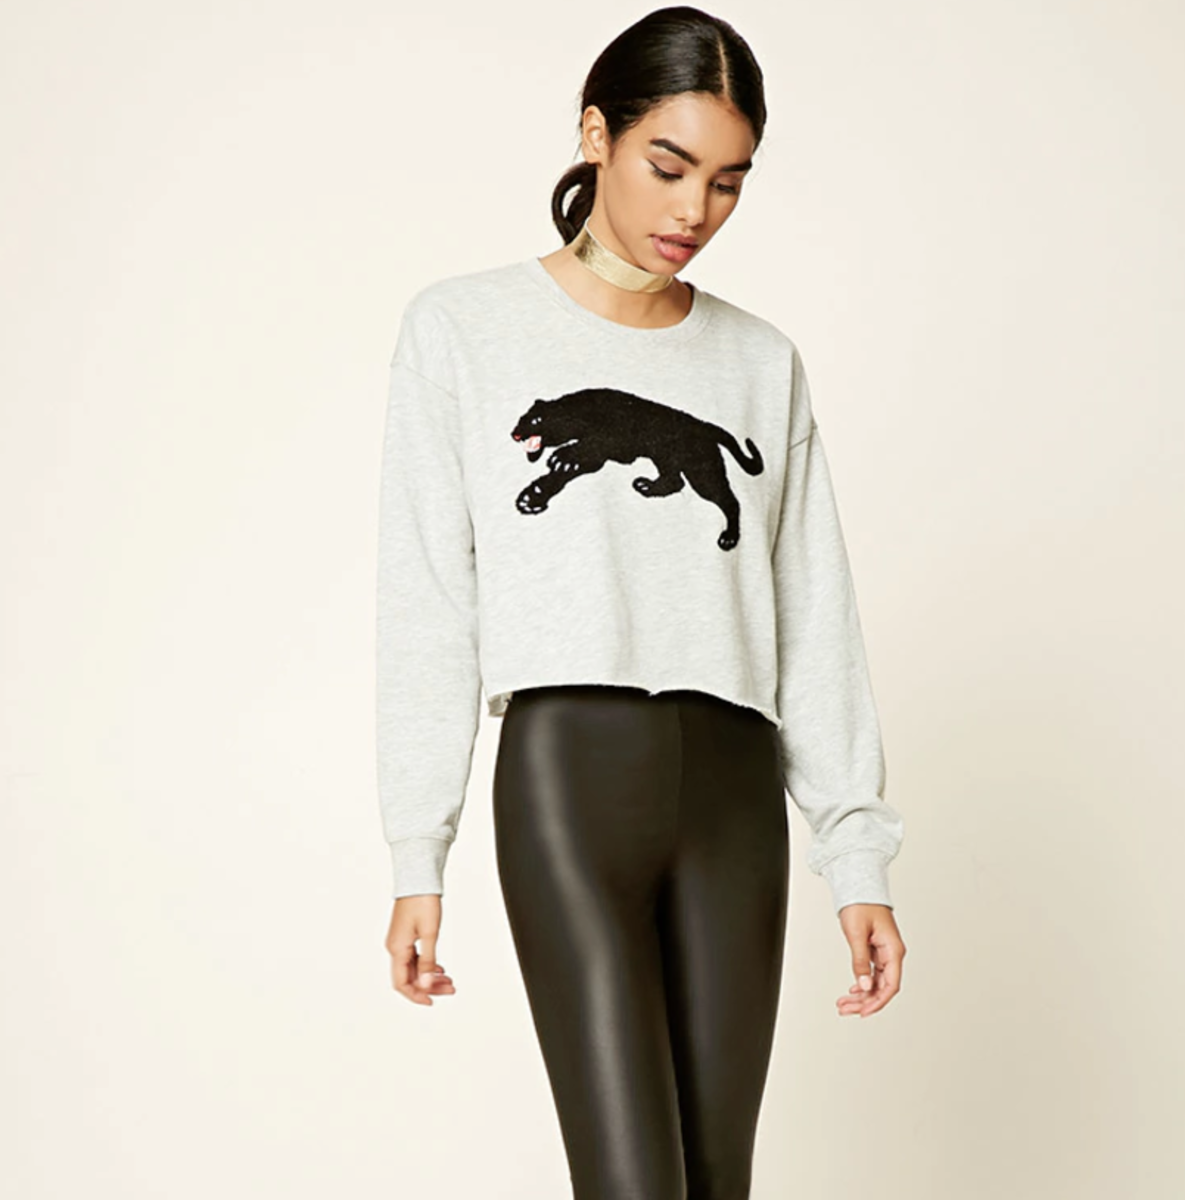 Shop the Item: Graphic Panther Sweater ($17) - This would make jeans and sneaks feel a bit more fun